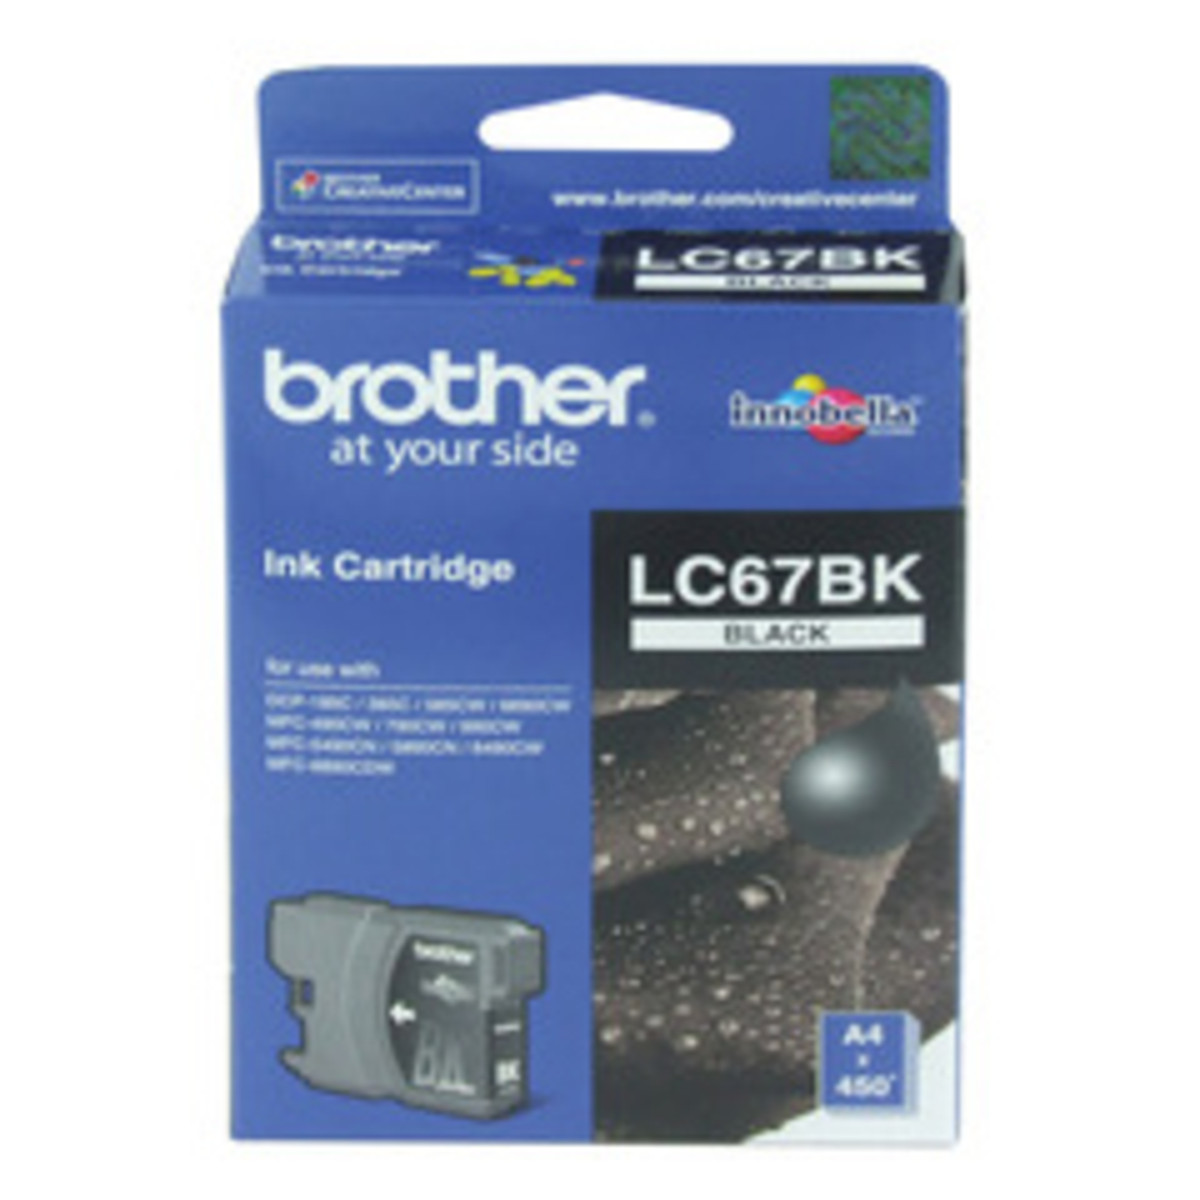 Brother LC-67BK Black Ink Cartridge